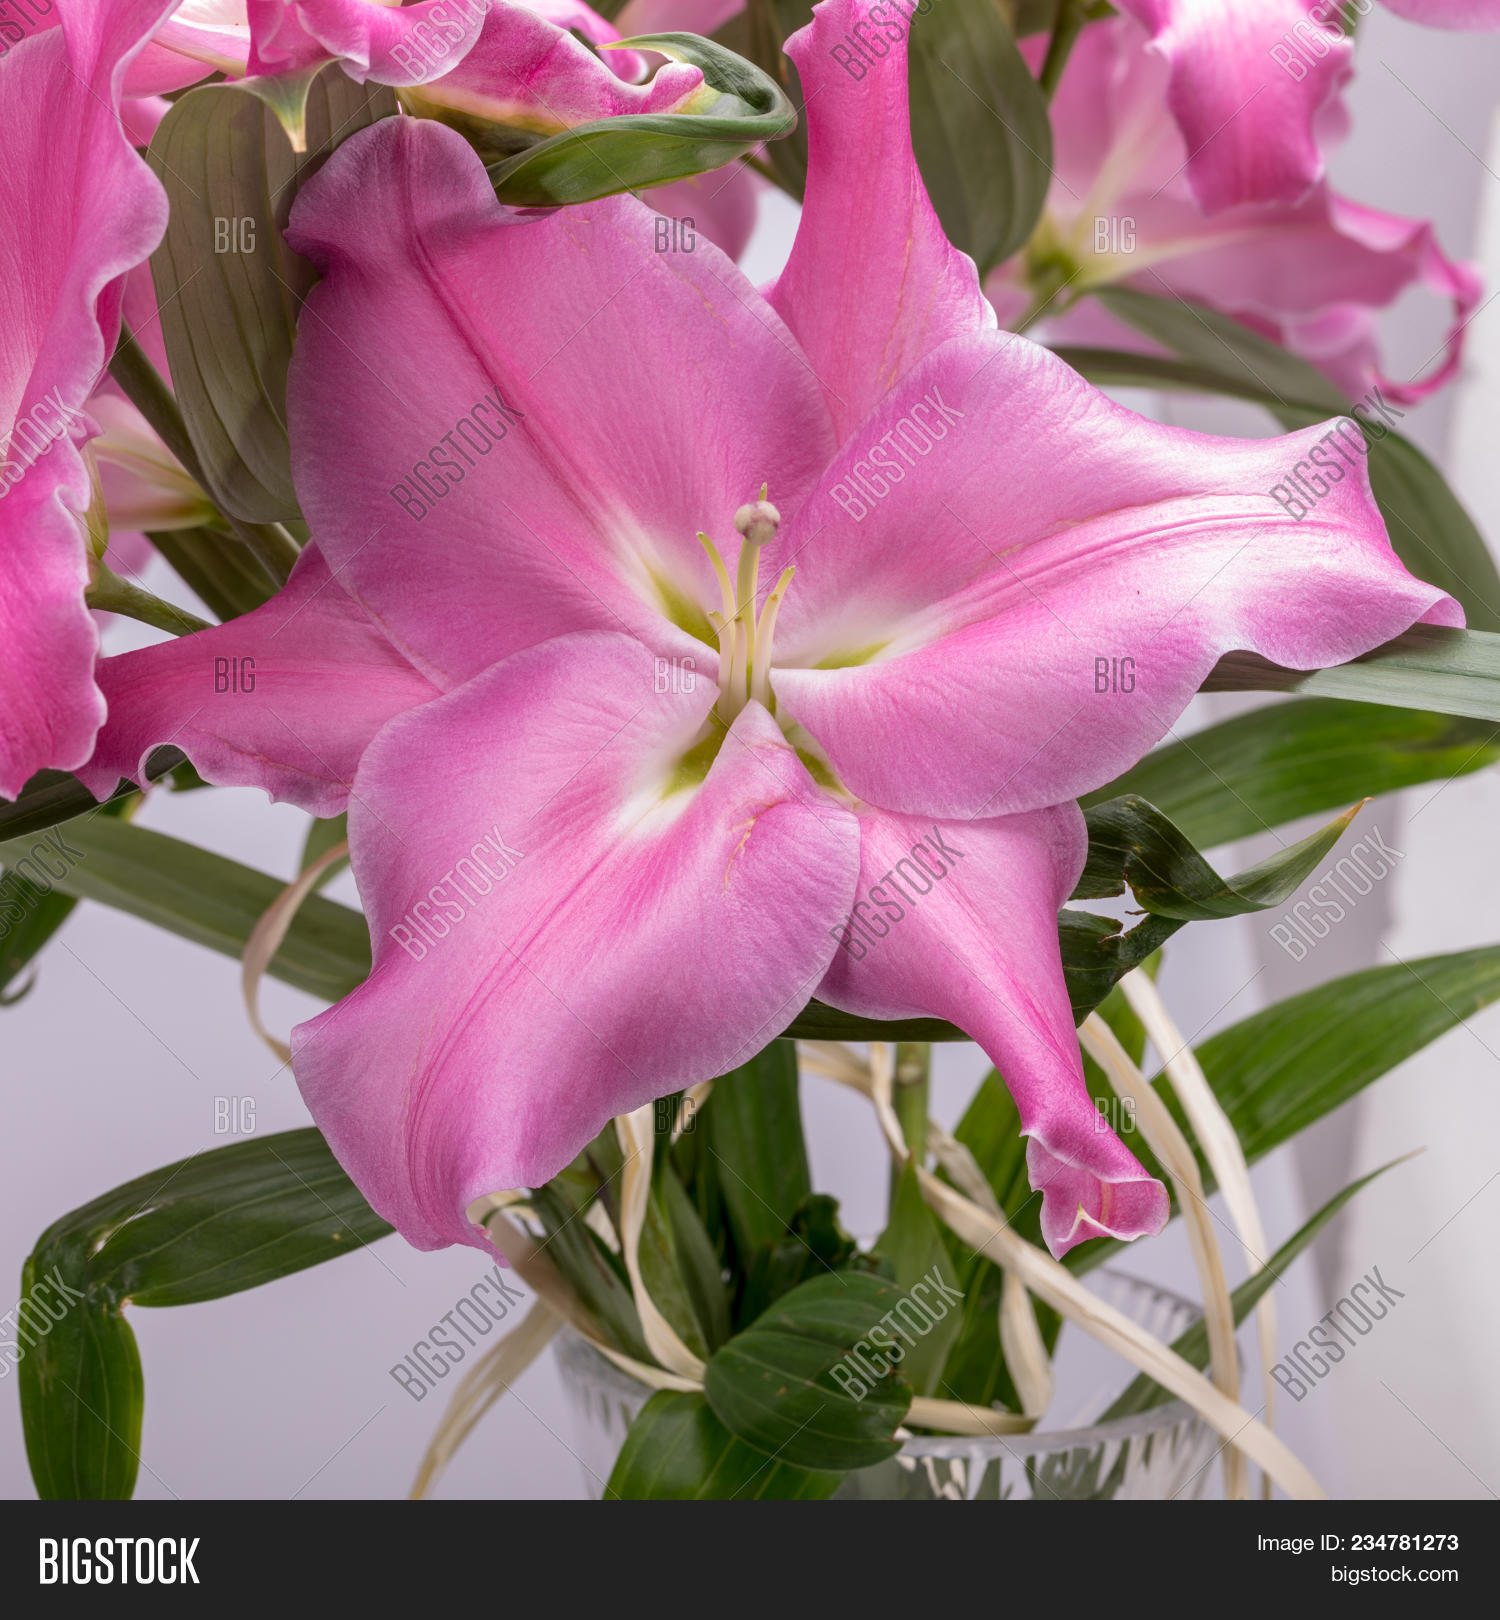 Close pink liles image photo free trial bigstock close up of pink liles flowers common names for species in this genus include mightylinksfo